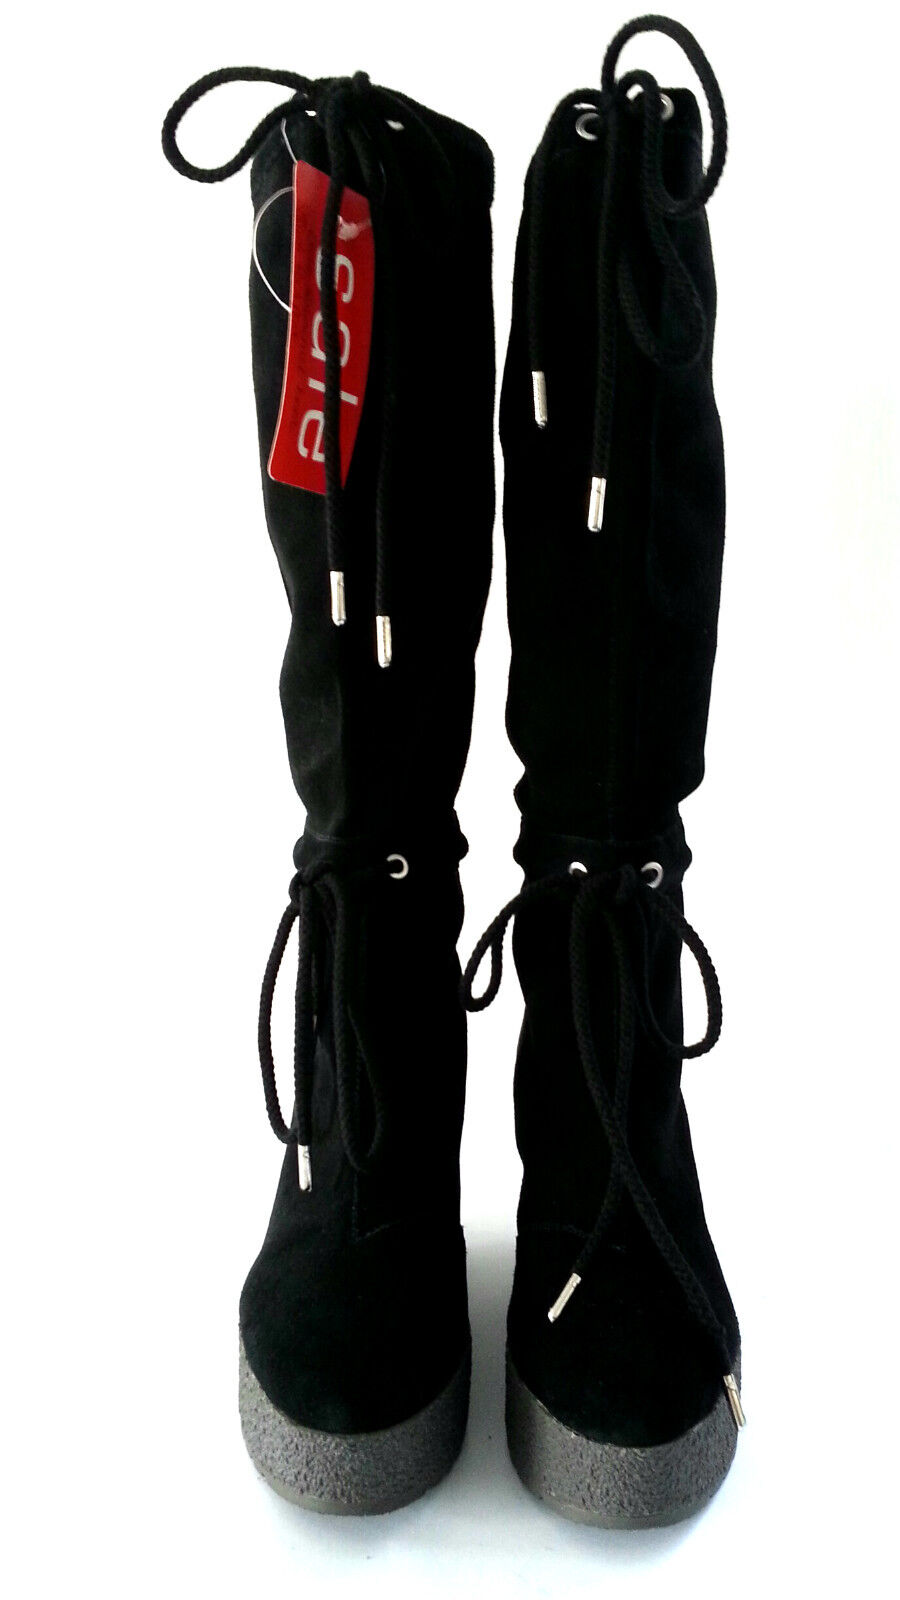 ROCKPORT - CEDRA SCRUNCHED - TALL BOOT - BLACK - SCRUNCHED SIZE 6 - 20,000+ FEEDBACK  SH108 5a9578